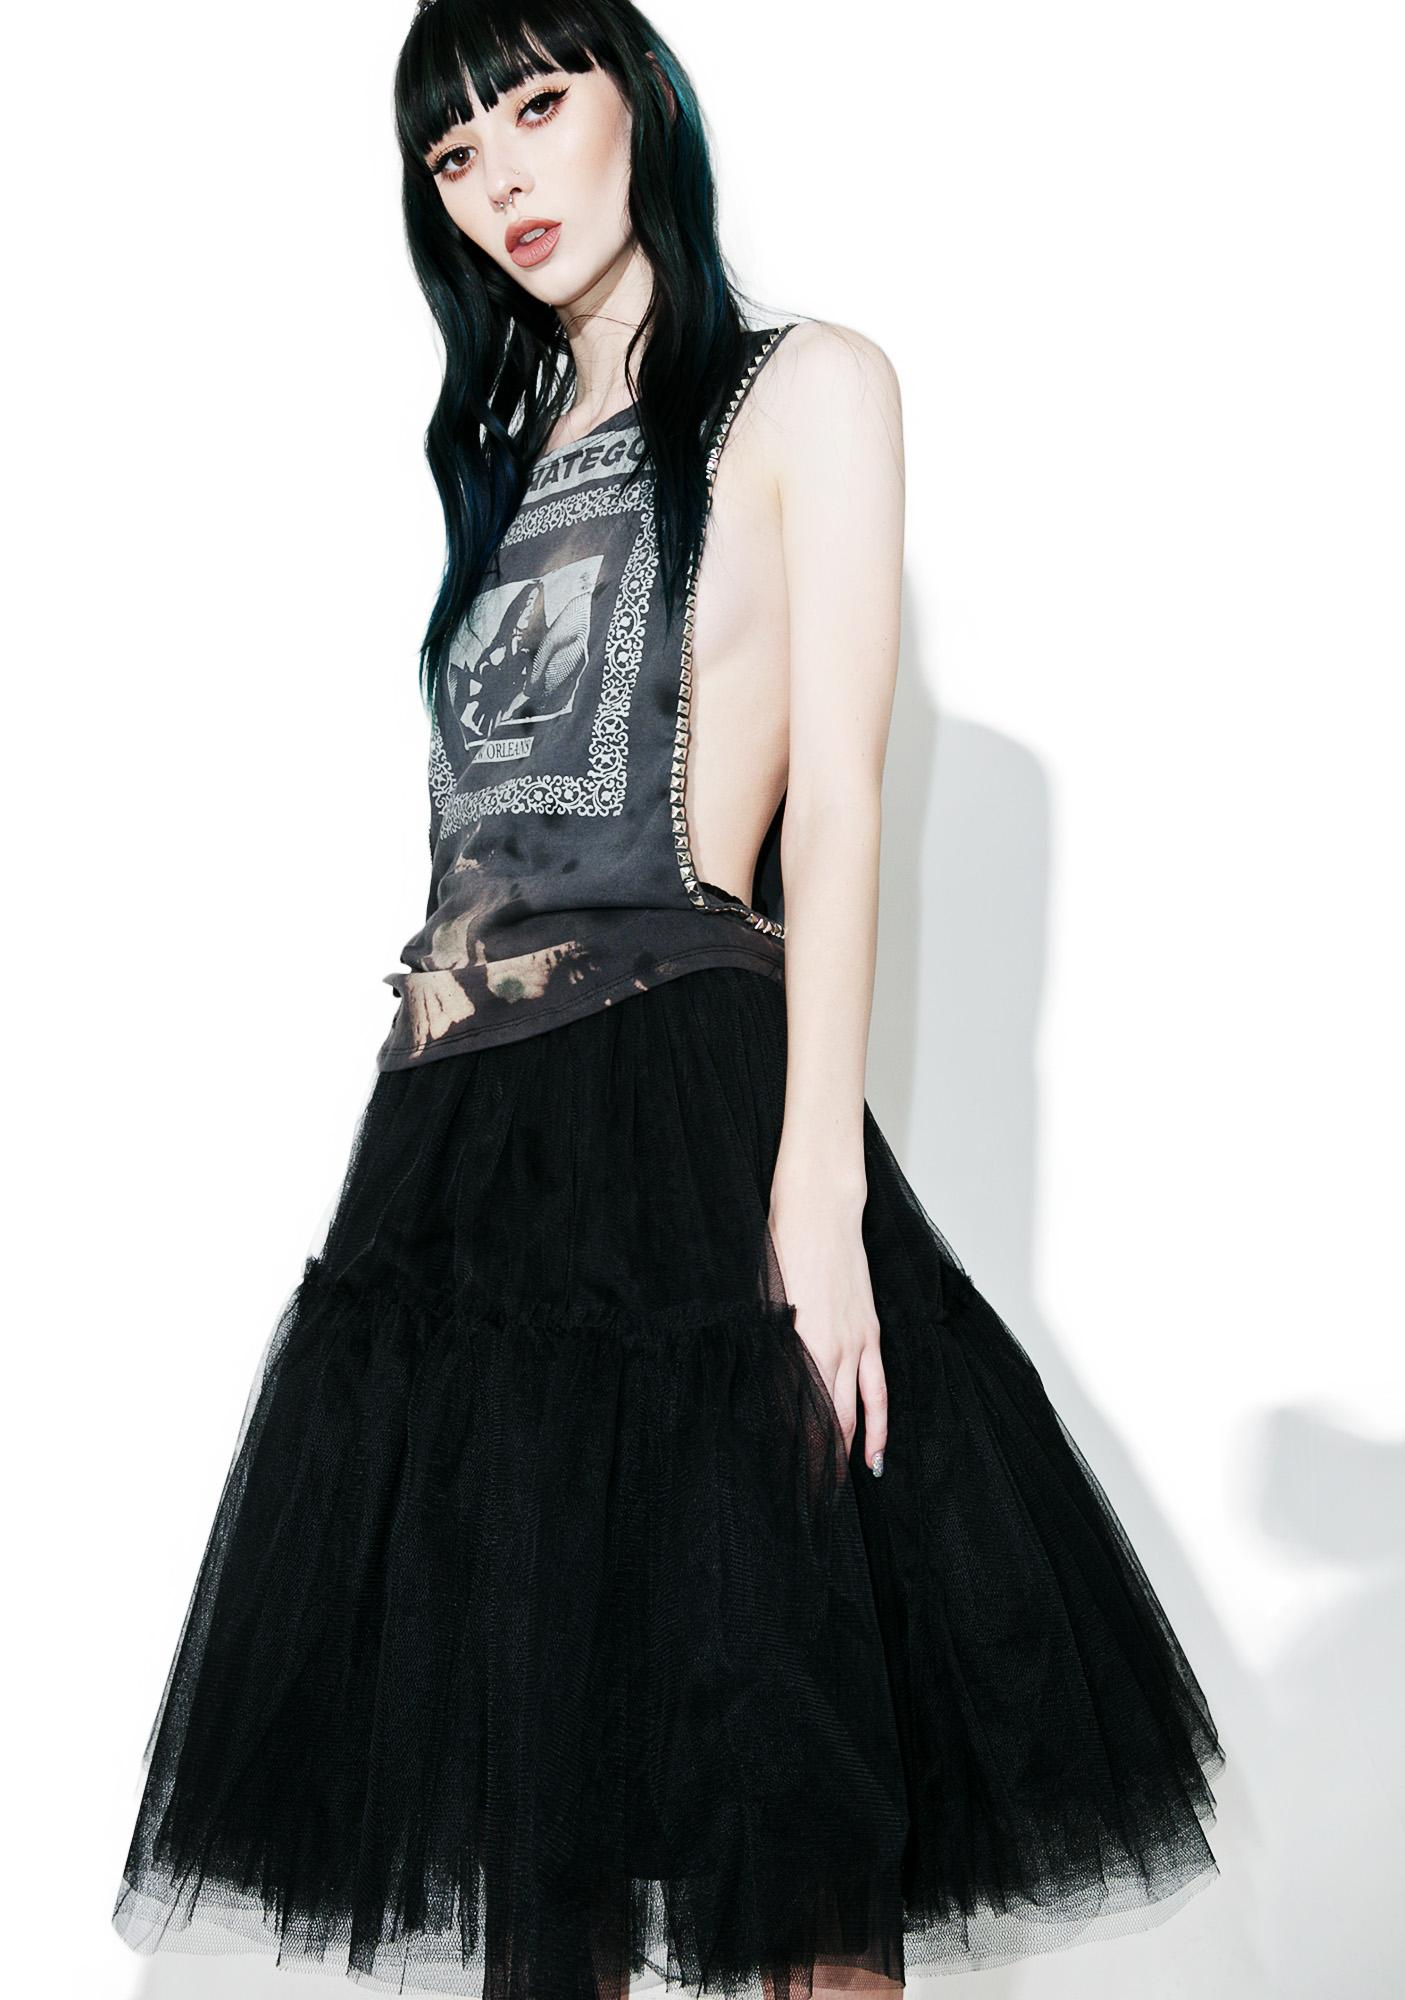 2 in 1 cocktail dresses gothic